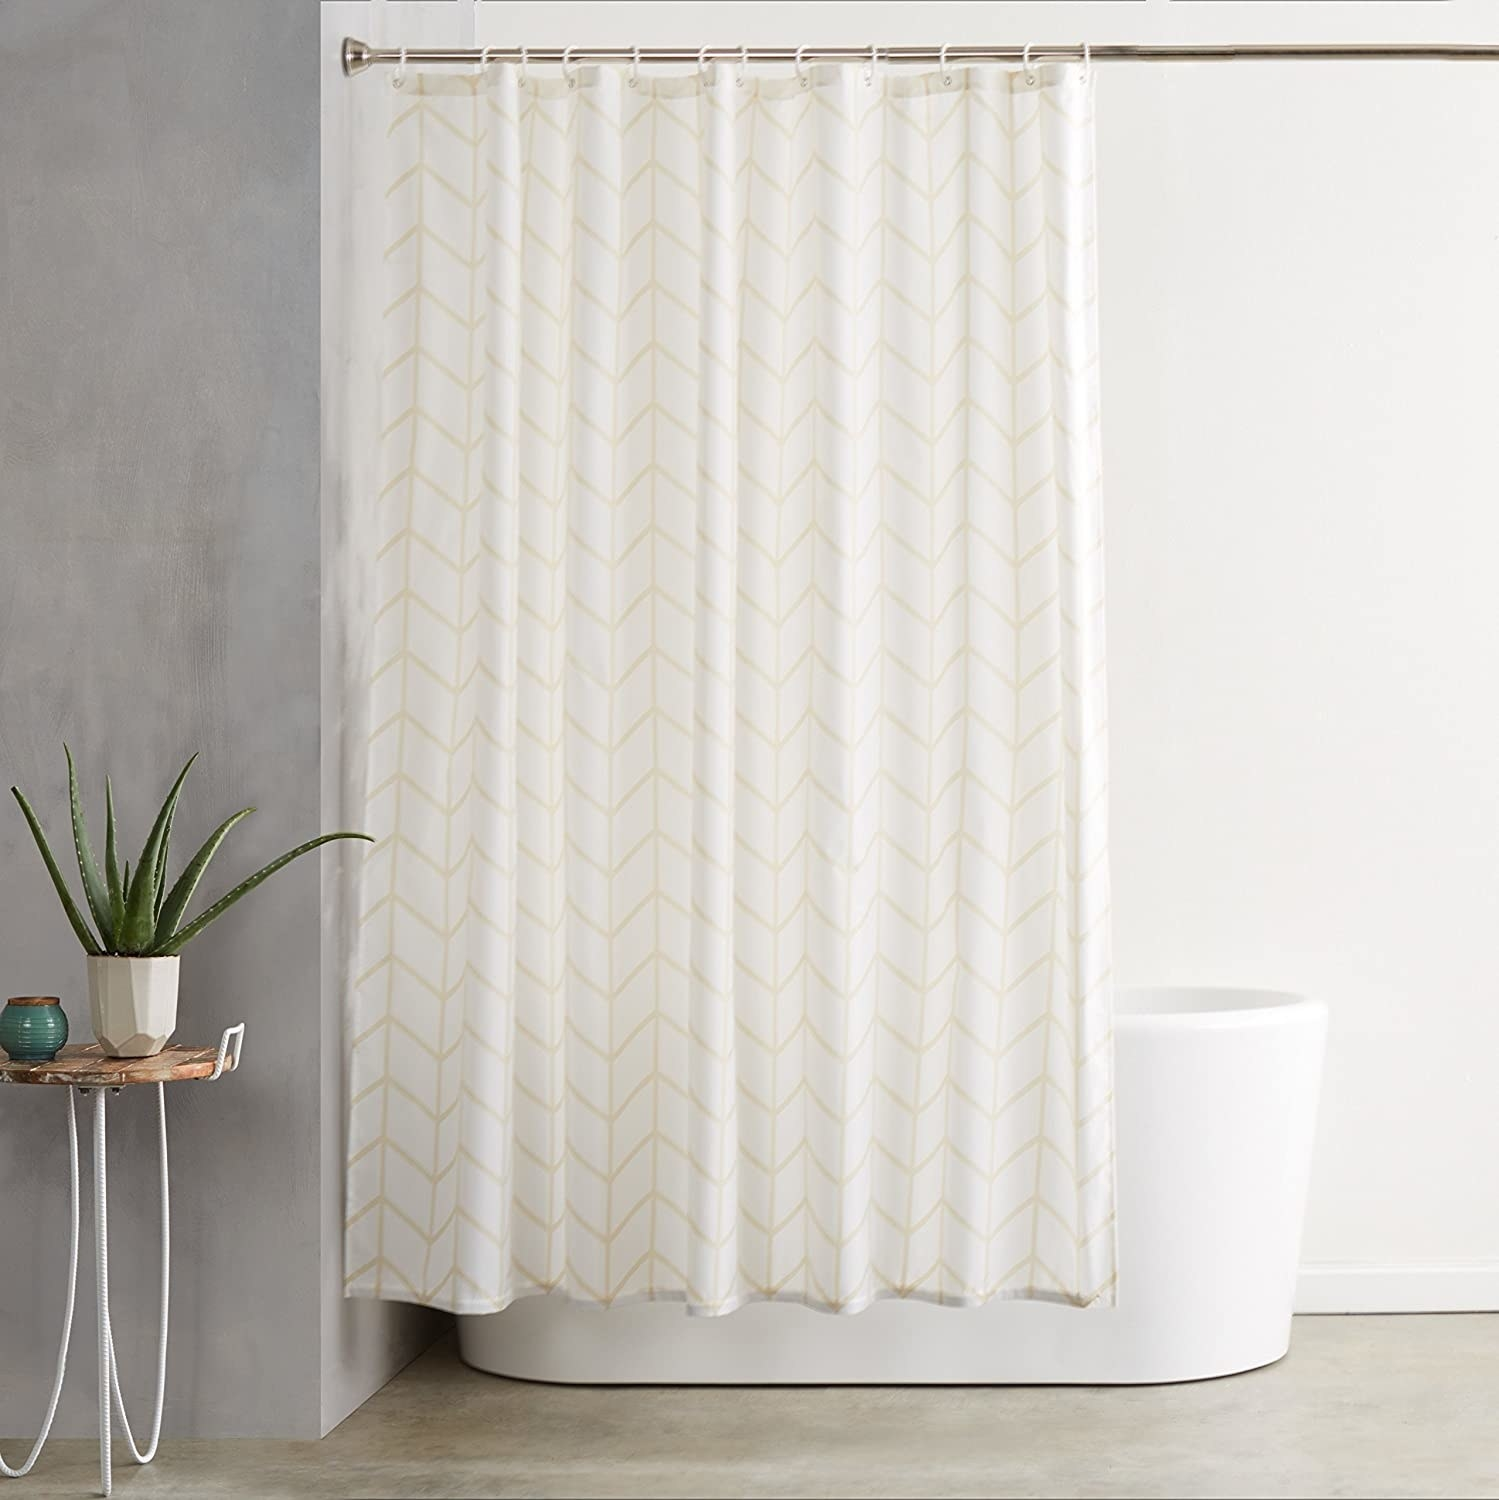 The shower curtain hung over a freestanding tub in a minimal bathroom